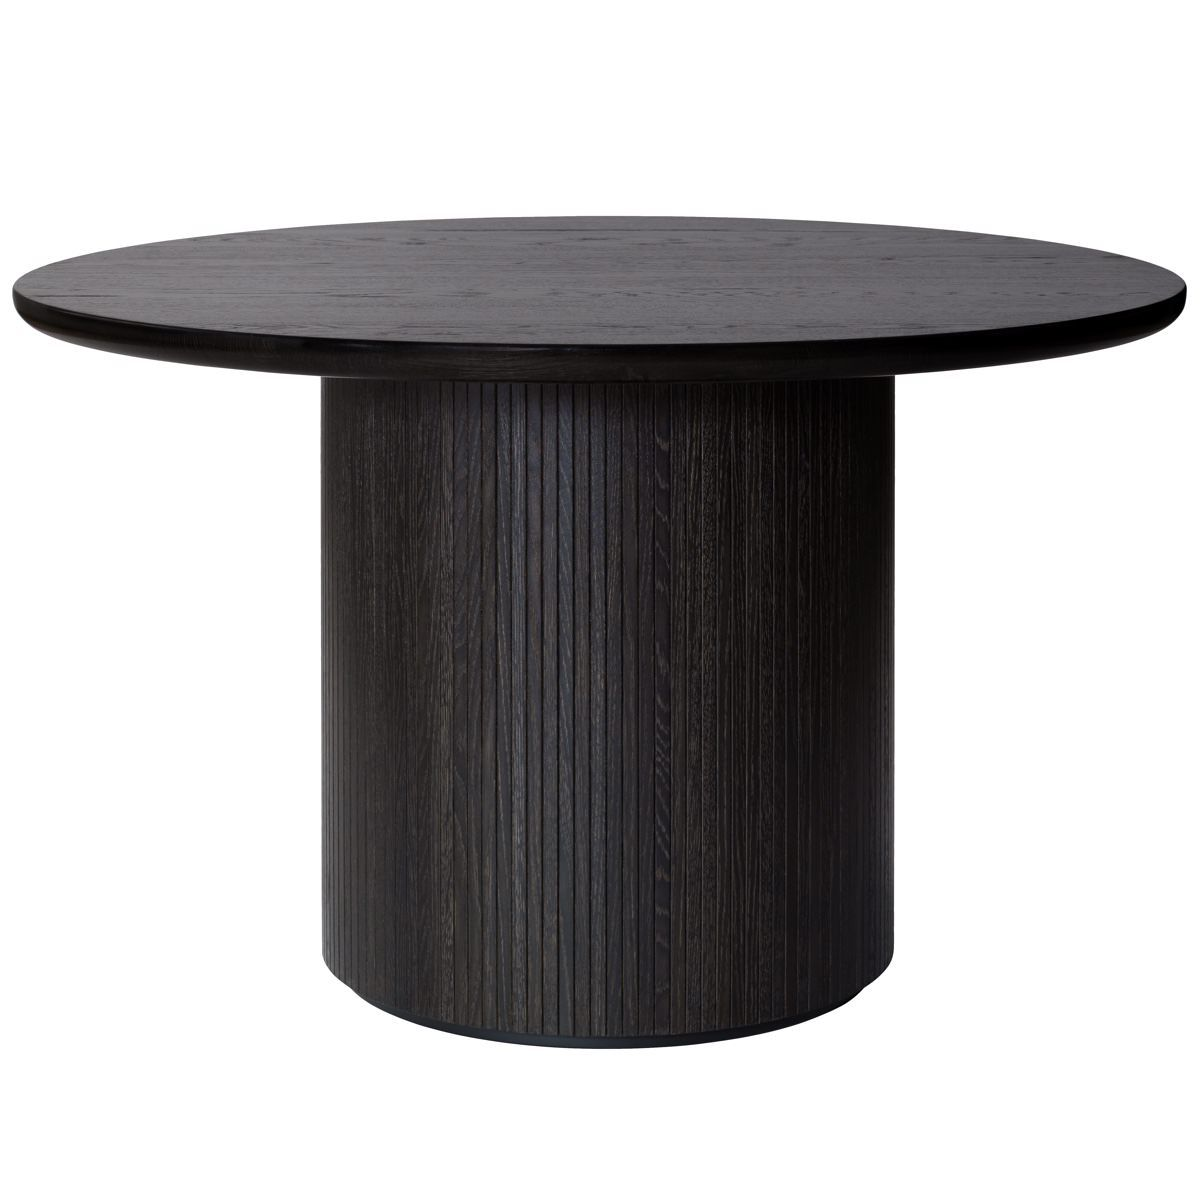 Gubi Moon Table - 120cm